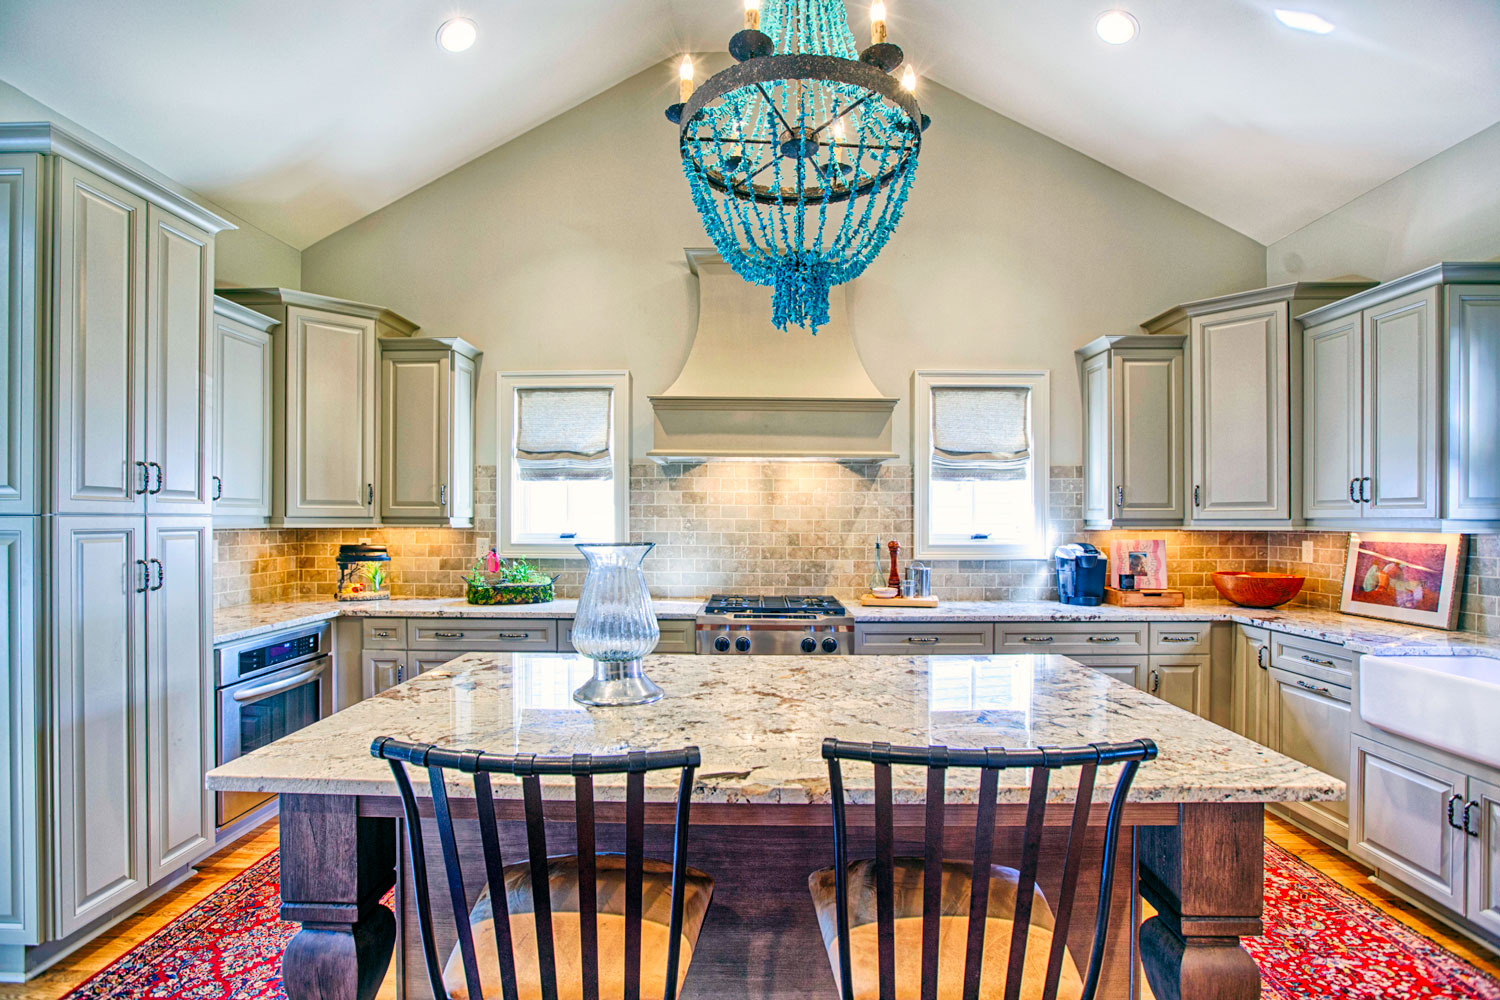 How to choose a cahandelier for a dining room